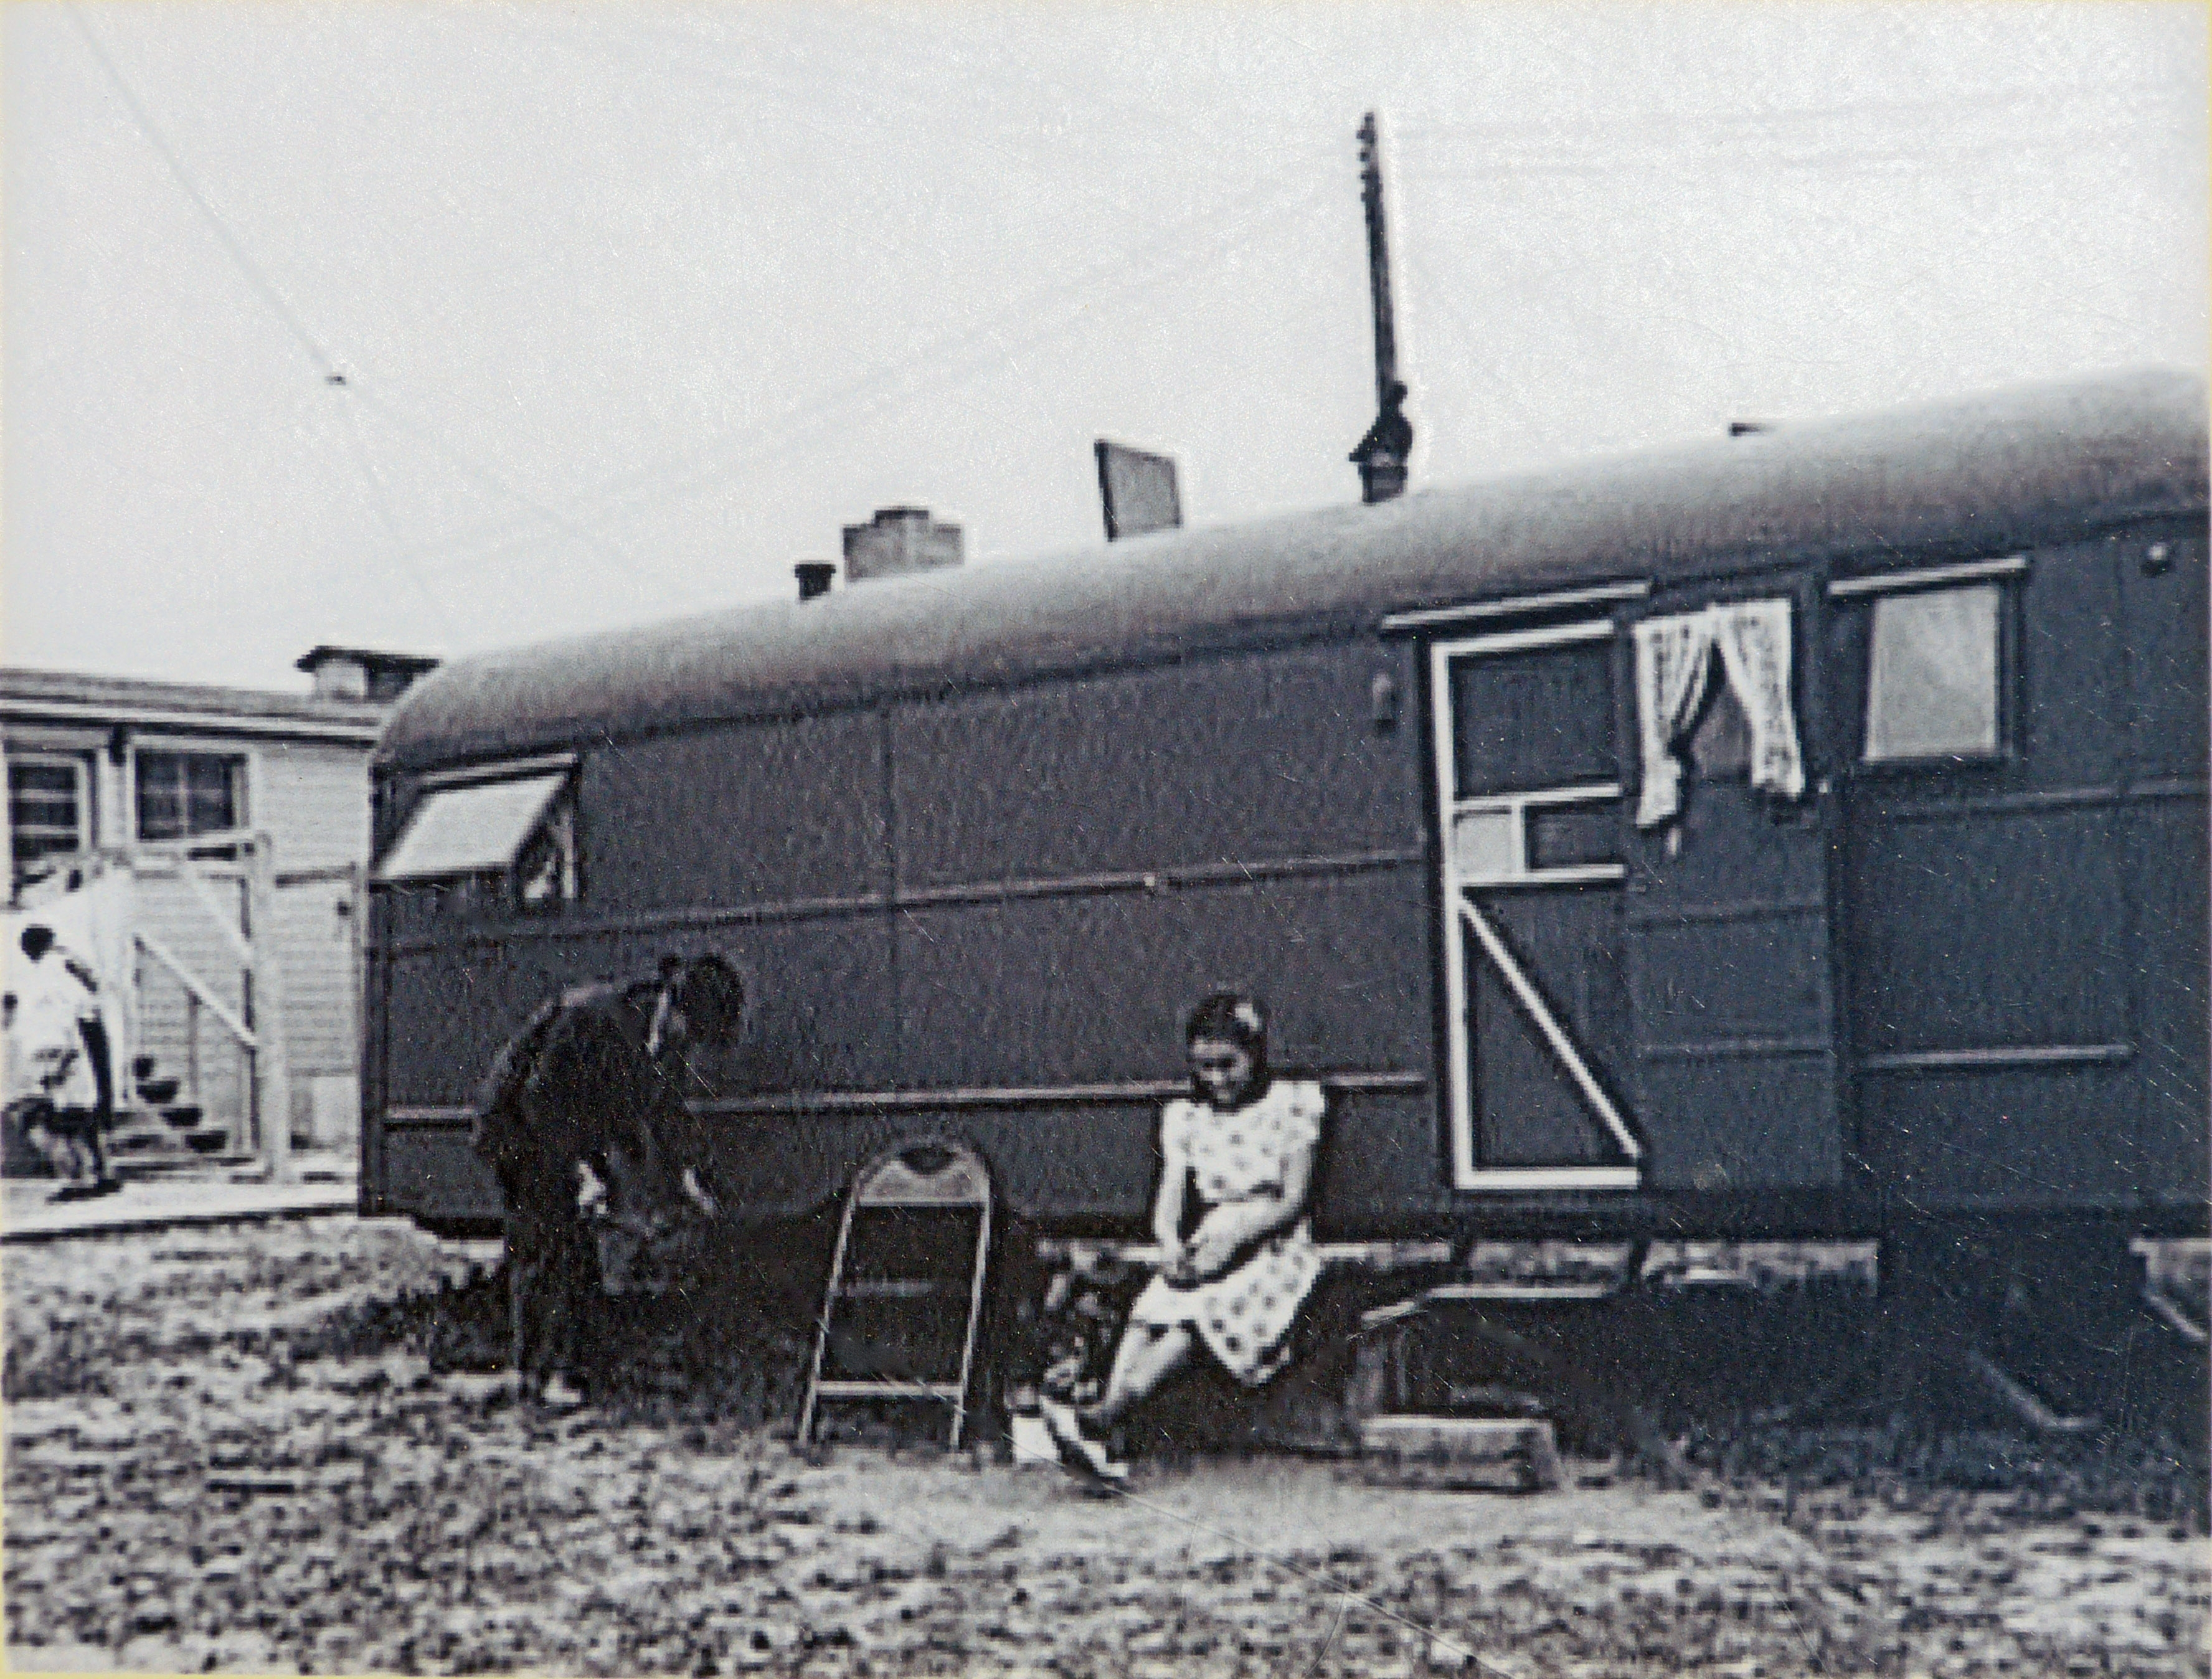 Arlington Virginia,<br> FSA Trailer Camp Project for Negroes,<br>Single Type Trailer; April 1942